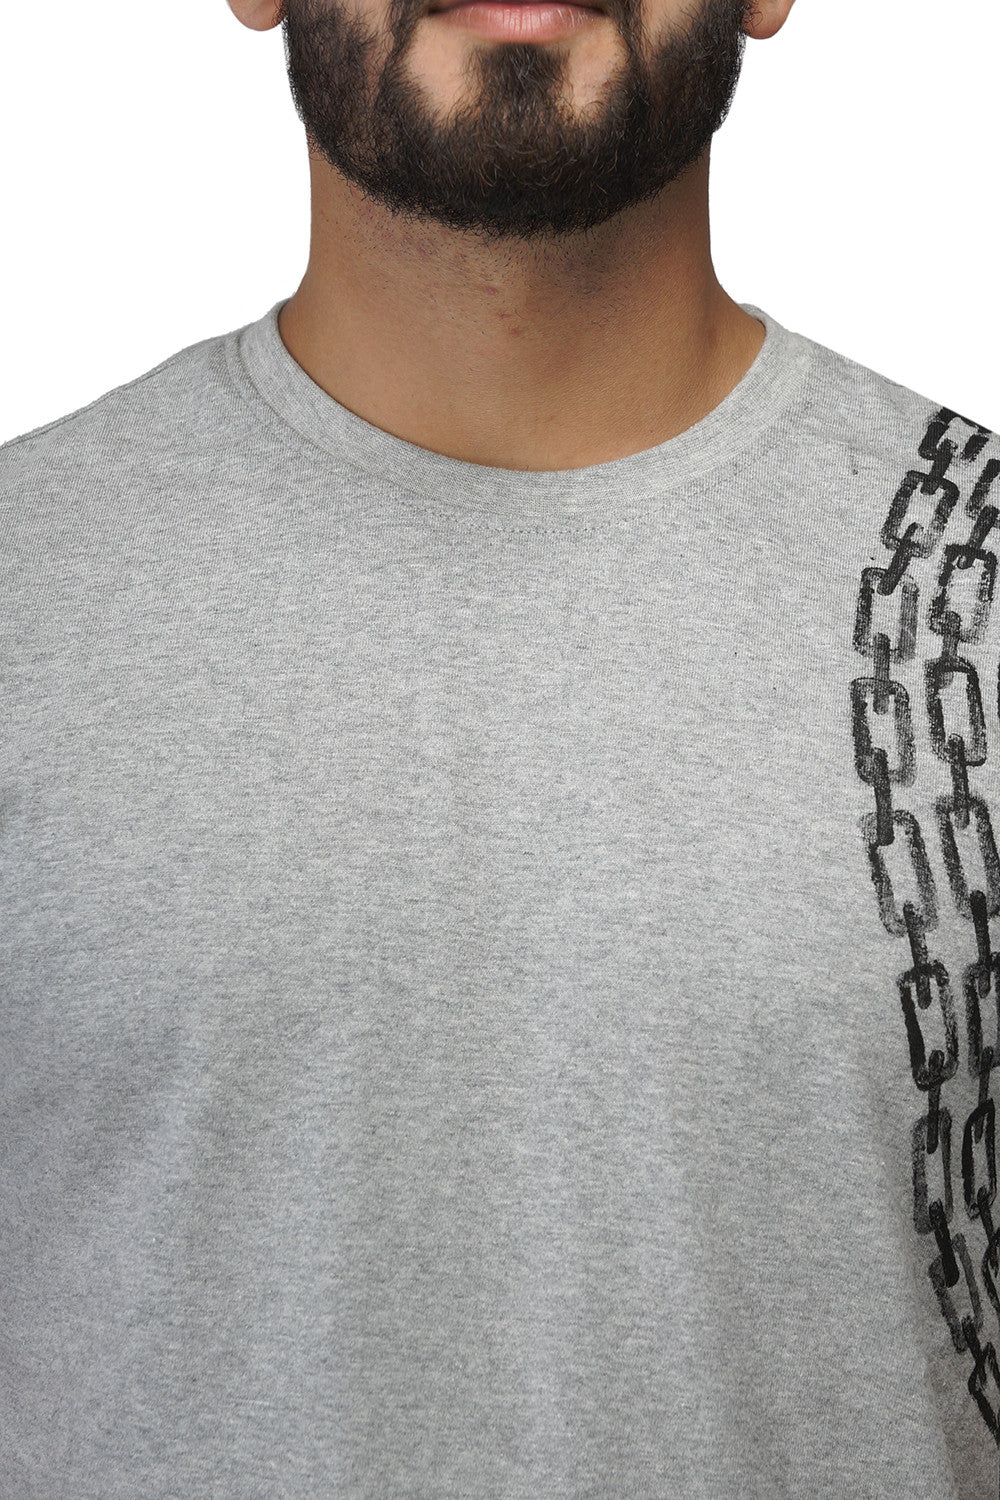 Hand-painted Minimalist Chain Grey T-shirt - Rang Rage  - 5